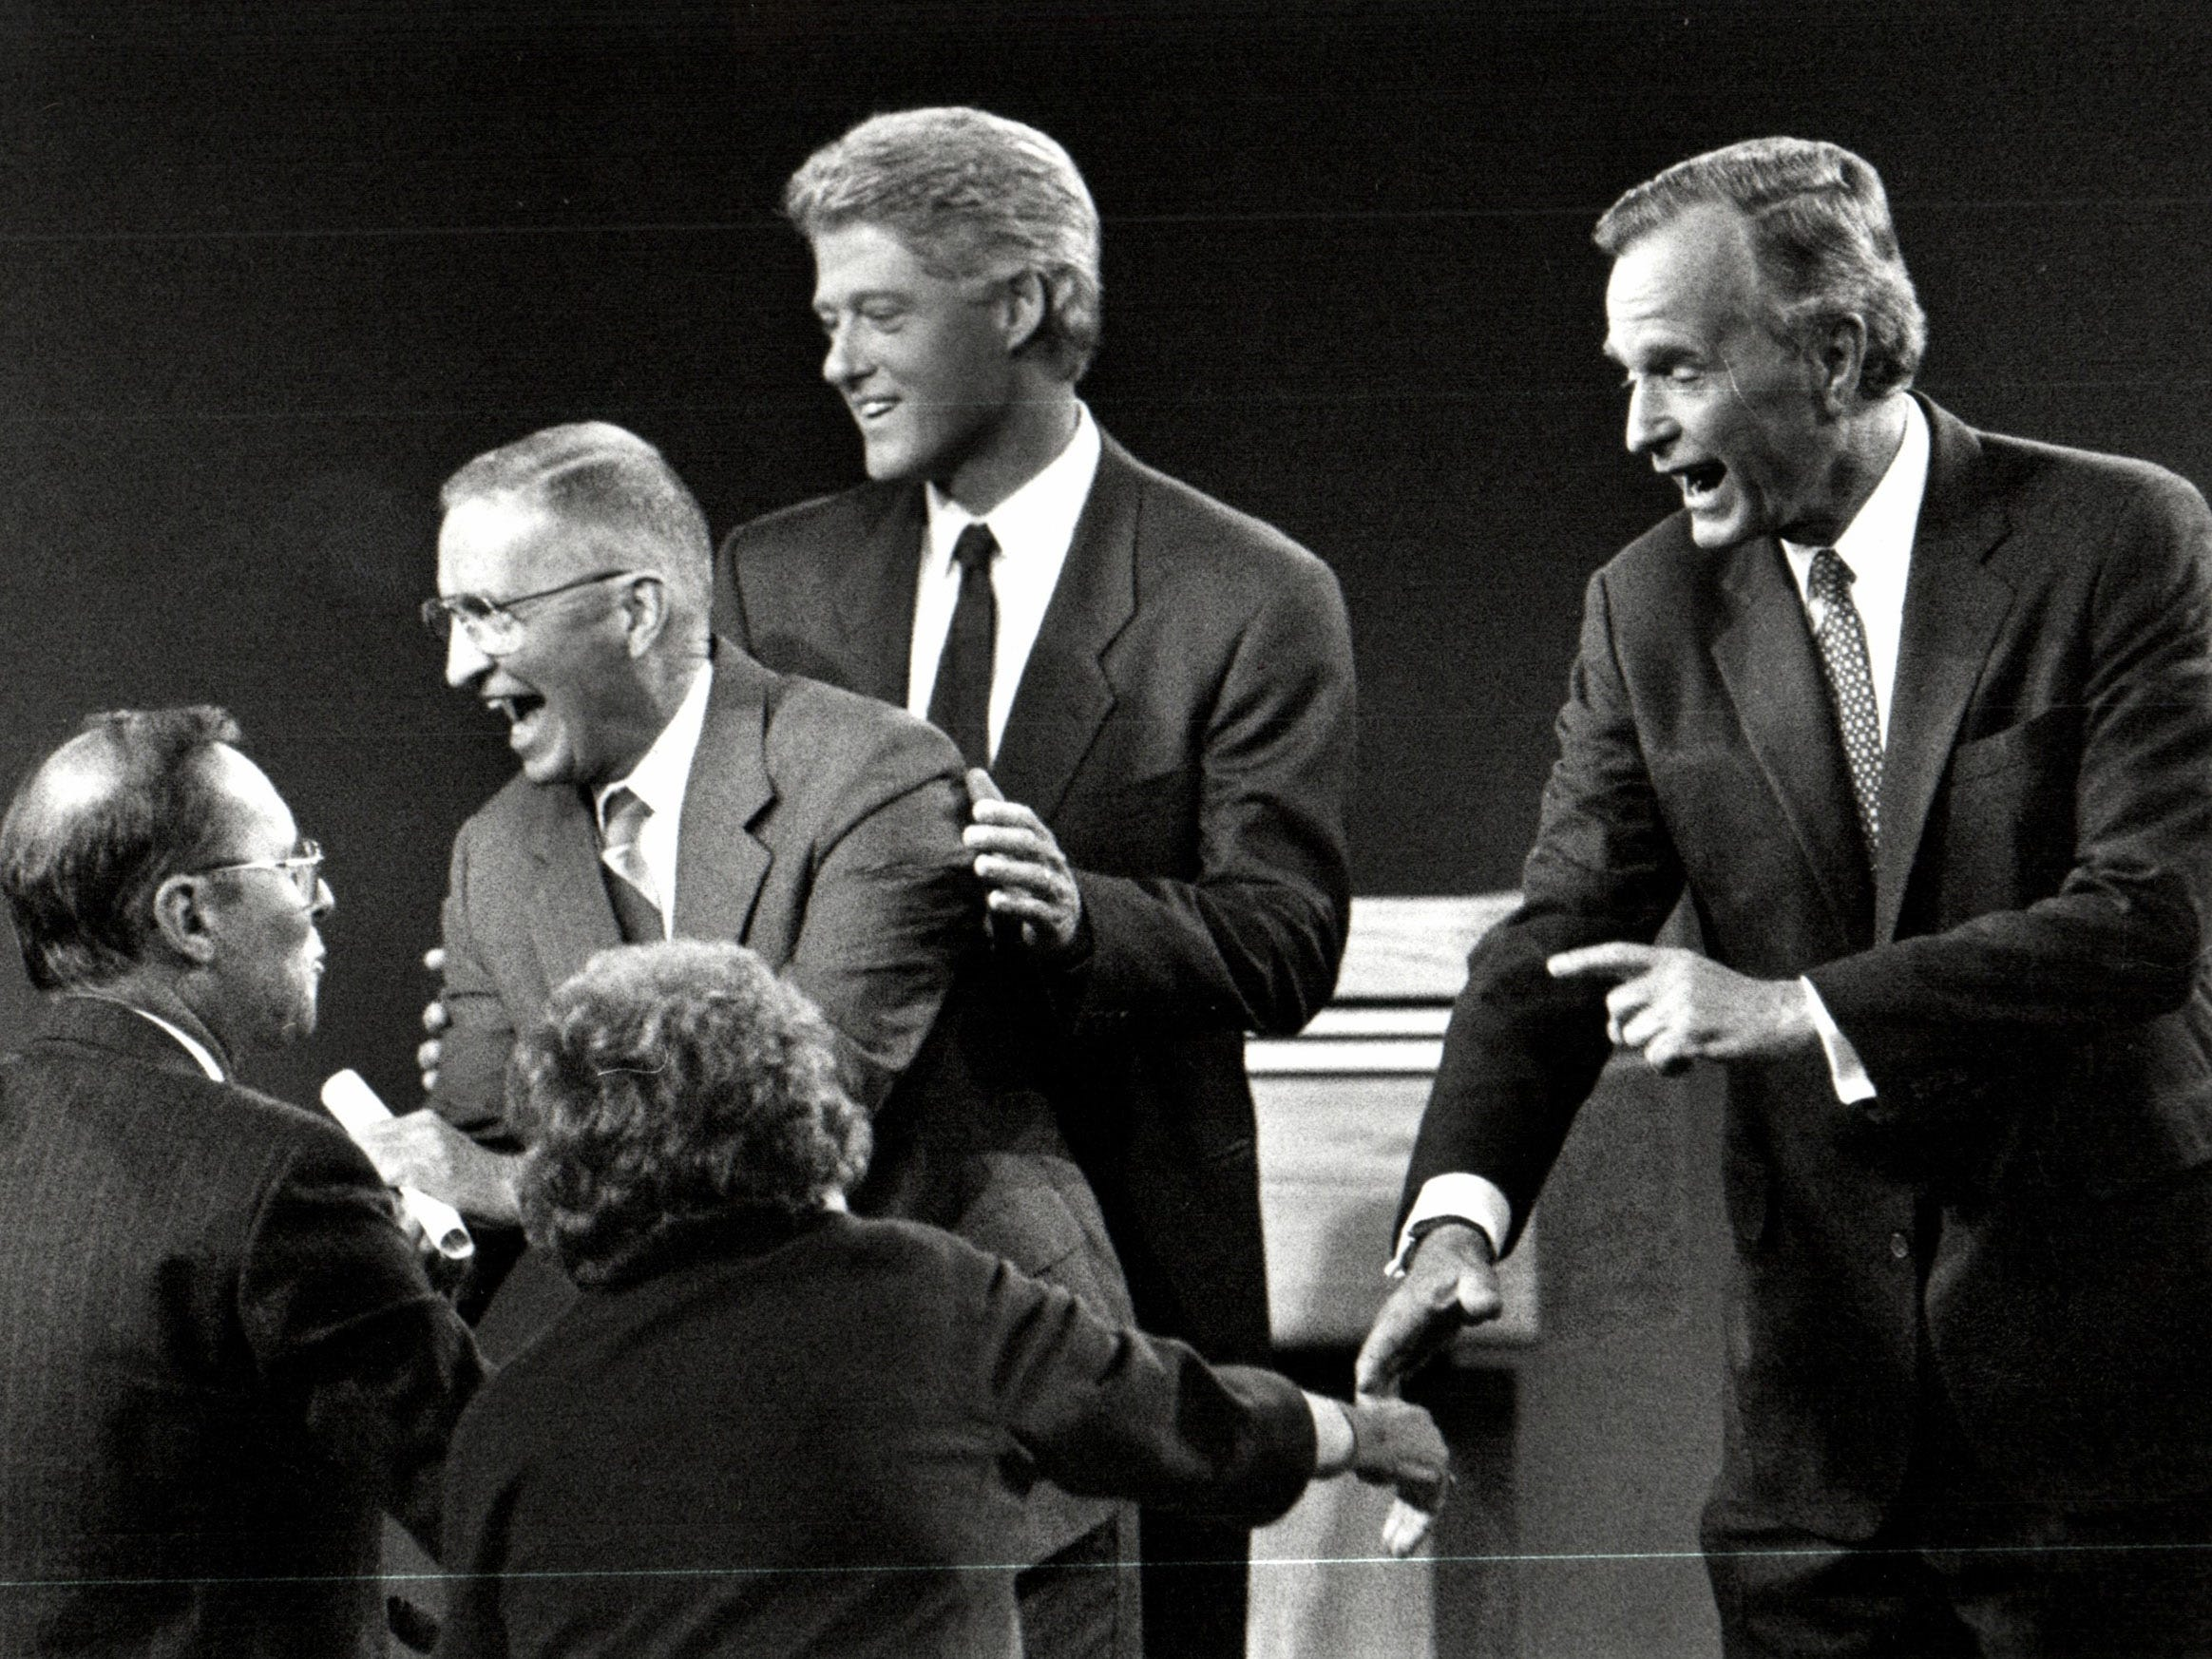 Ross Perot, Bill Clinton and George Bush greet questioners after the Presidential debate at Michigan State University in October 1992.